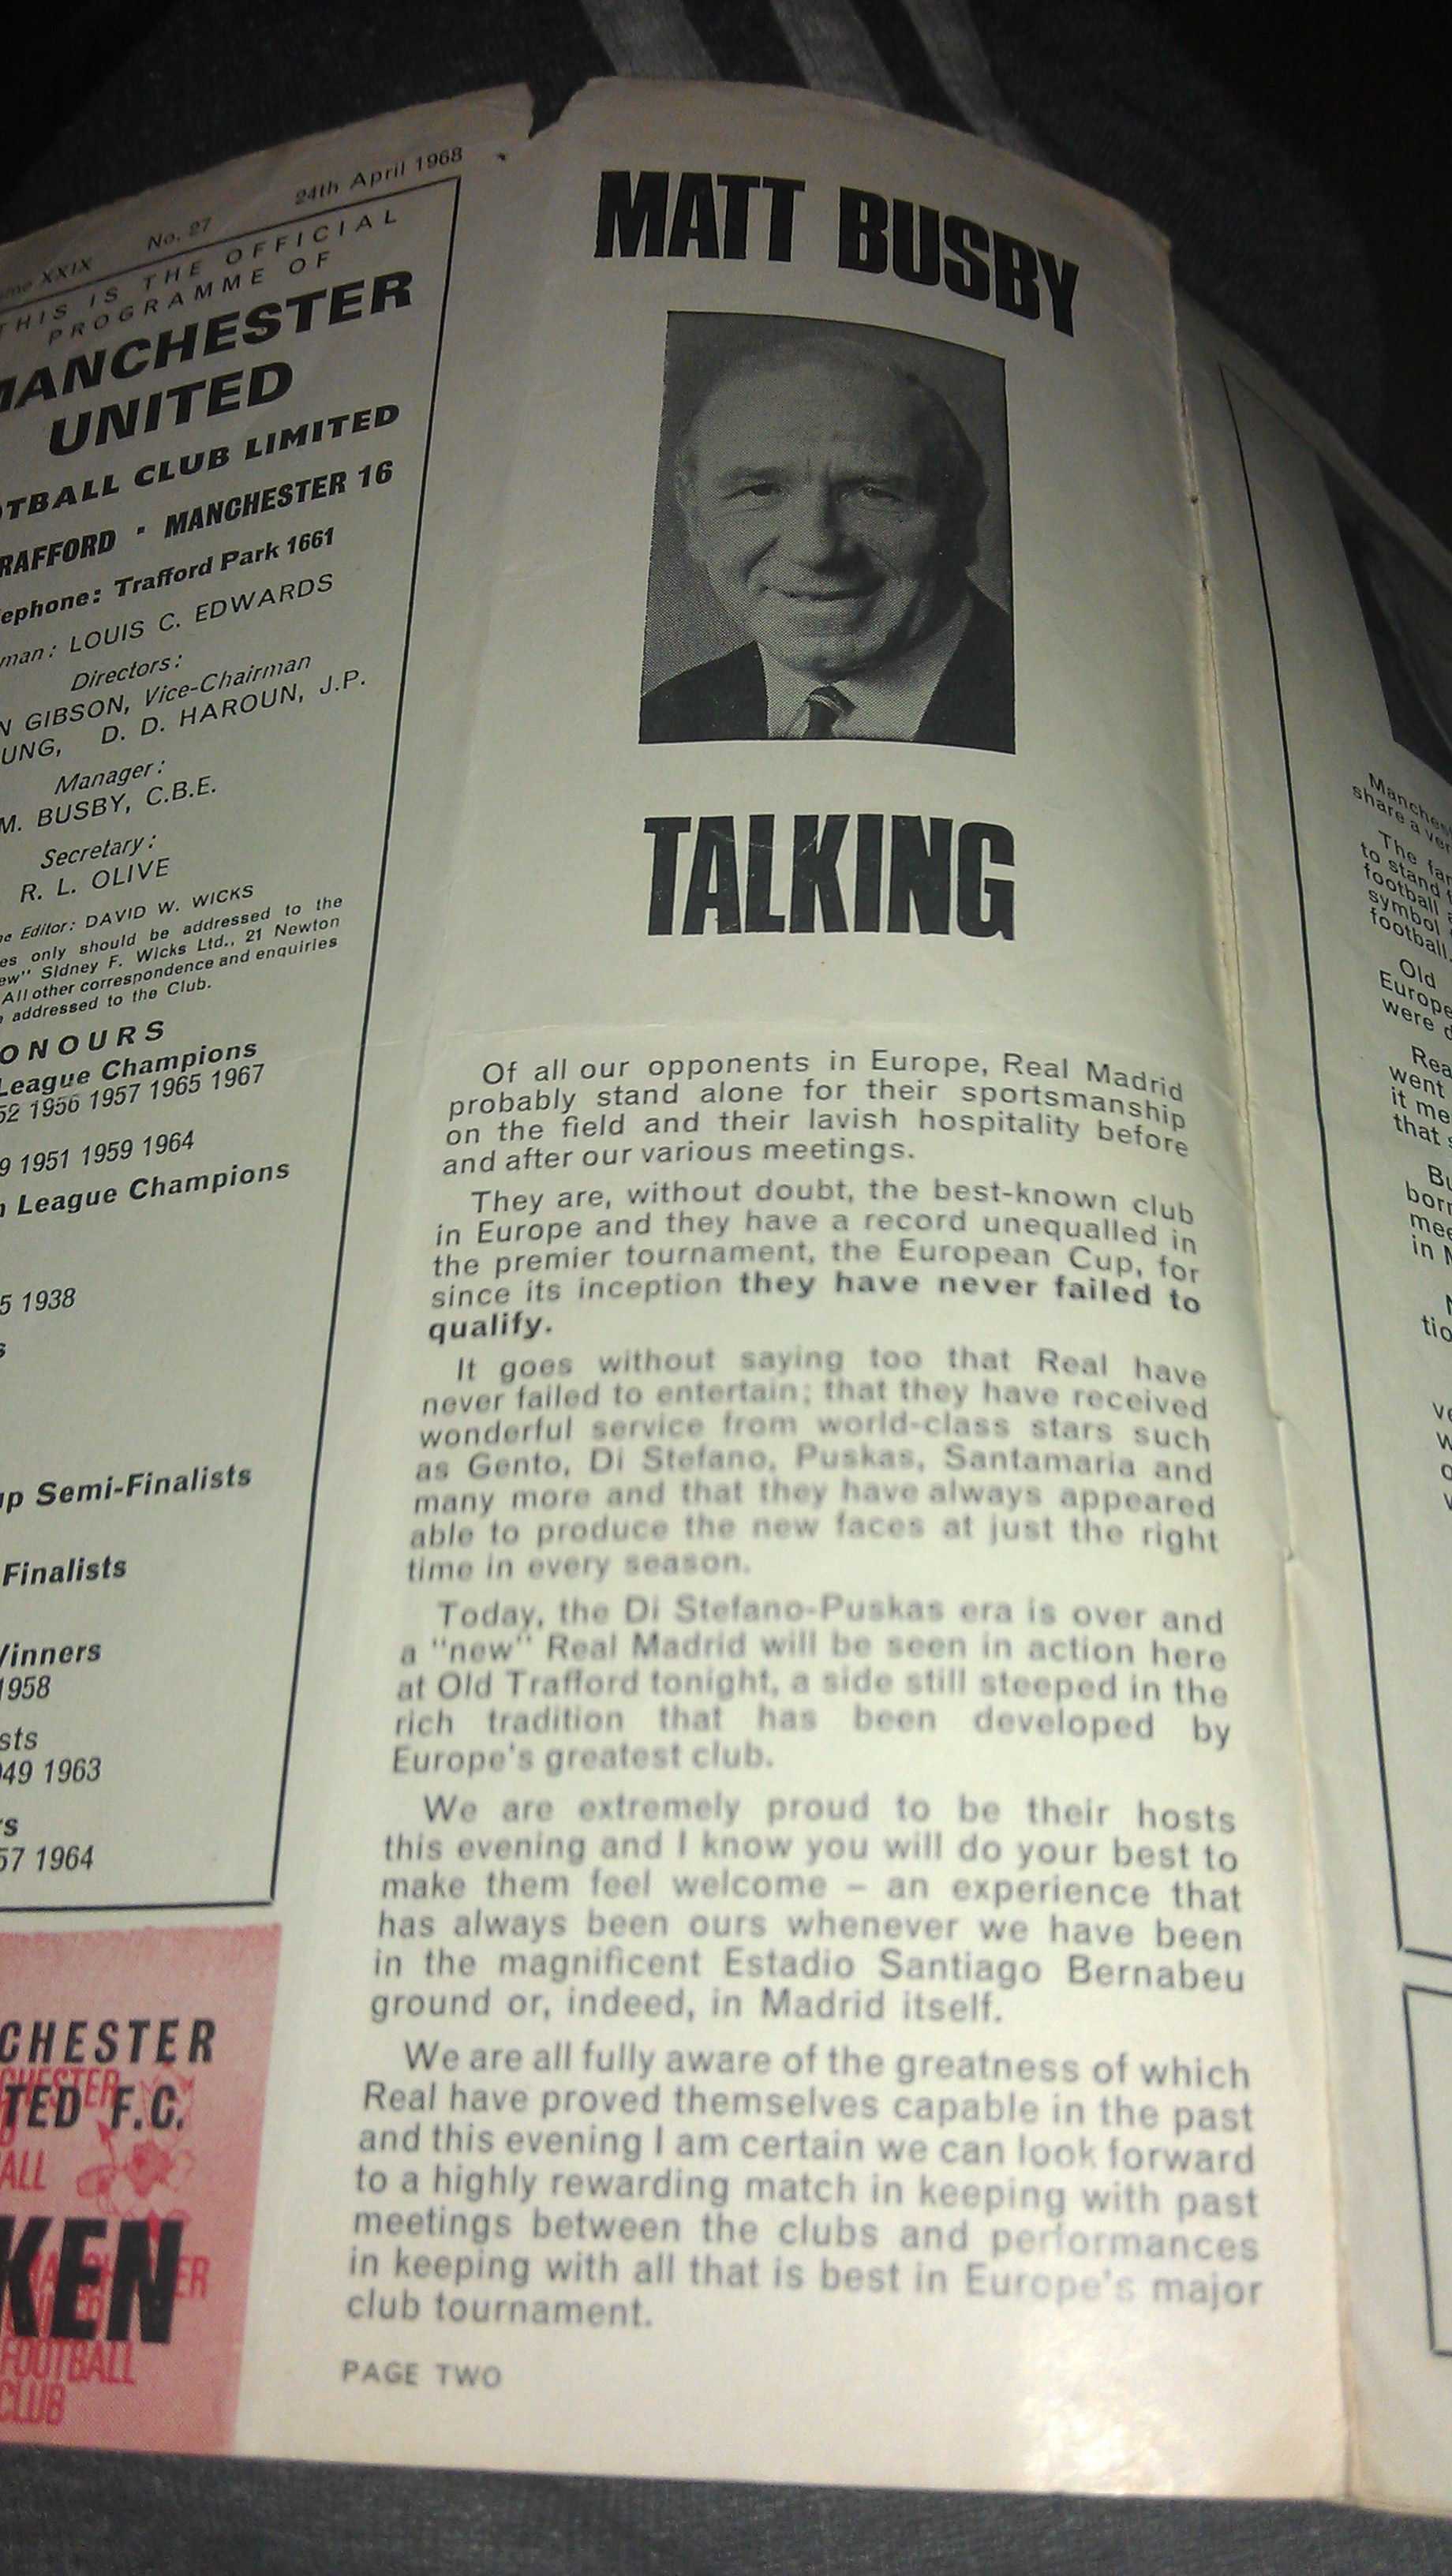 PICTURE: Sir Matt Busby's Programme Notes vs Real Madrid 1968